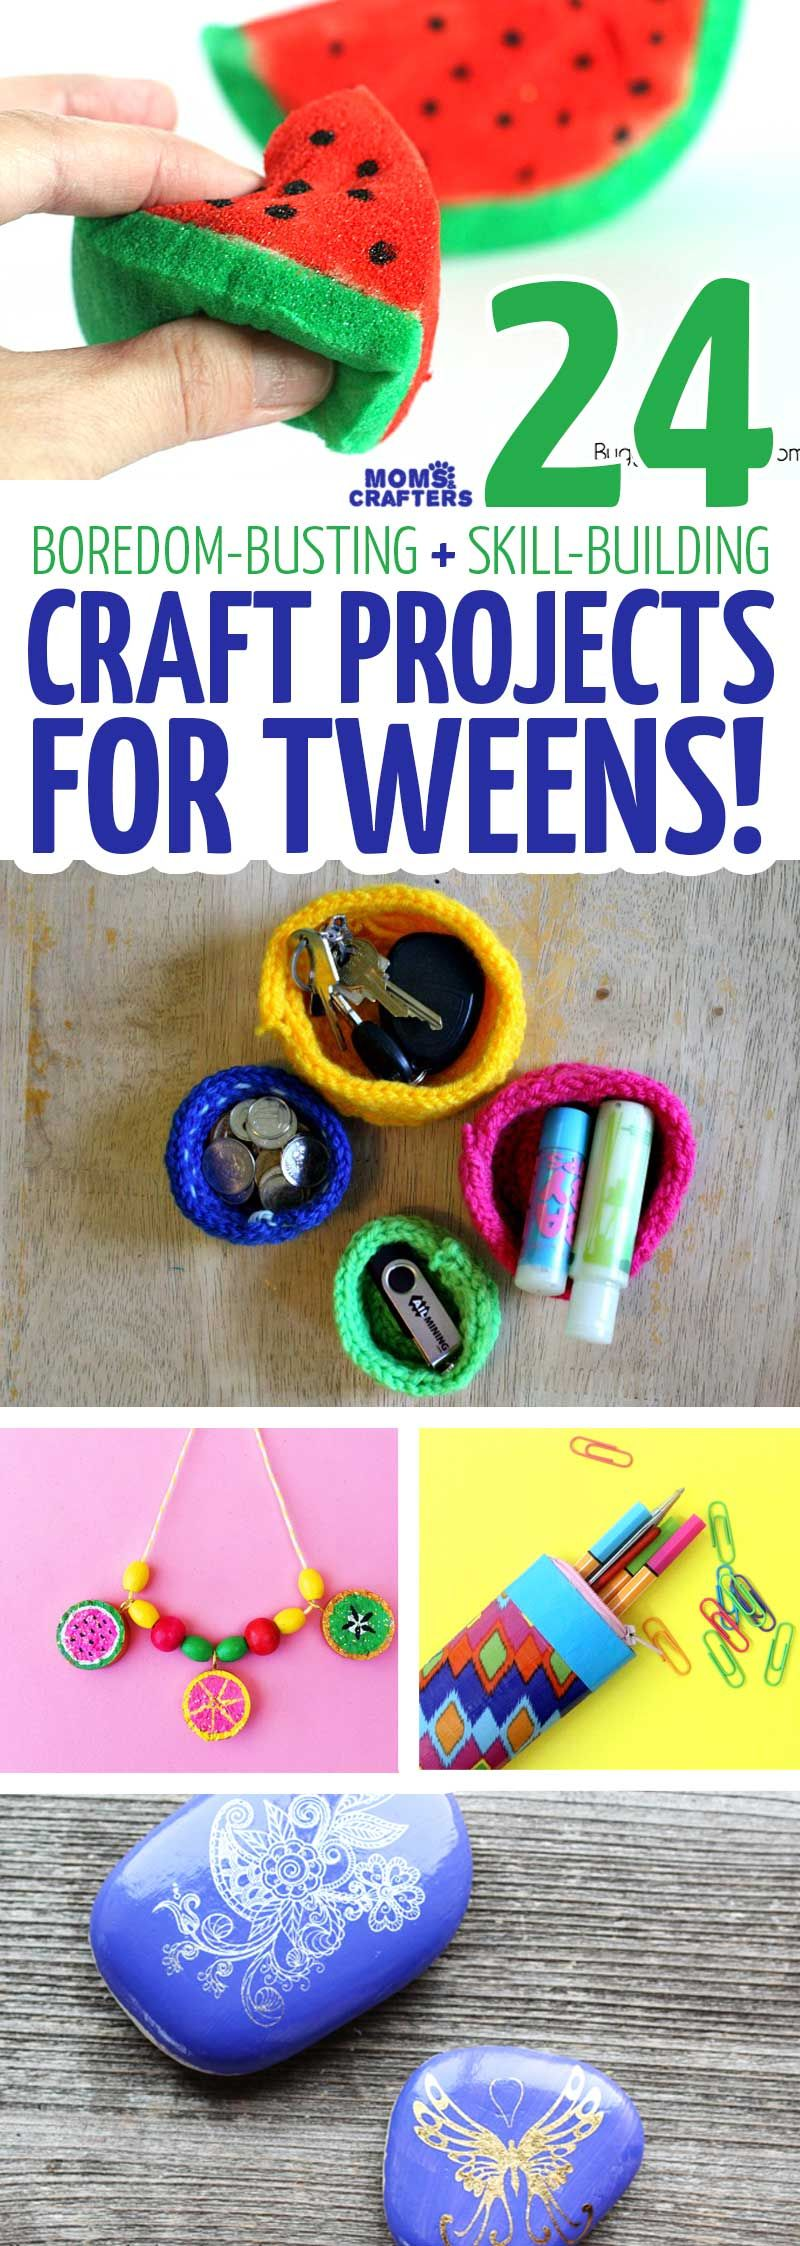 Craft Projects for Tweens  24 Cool Crafts and Skills to Learn - Tween crafts, Diy crafts for teens, Easy crafts for teens, Diy crafts for teen girls, Crafts for teens to make, Diy for teens - Looking for some cool, fresh ideas for craft projects for tweens  This list of 24 craft ideas for tweenagers includes some new skills to learn, some outofthebox ideas and only fun AND functional crafts, all appropriate for ages 814 years old!